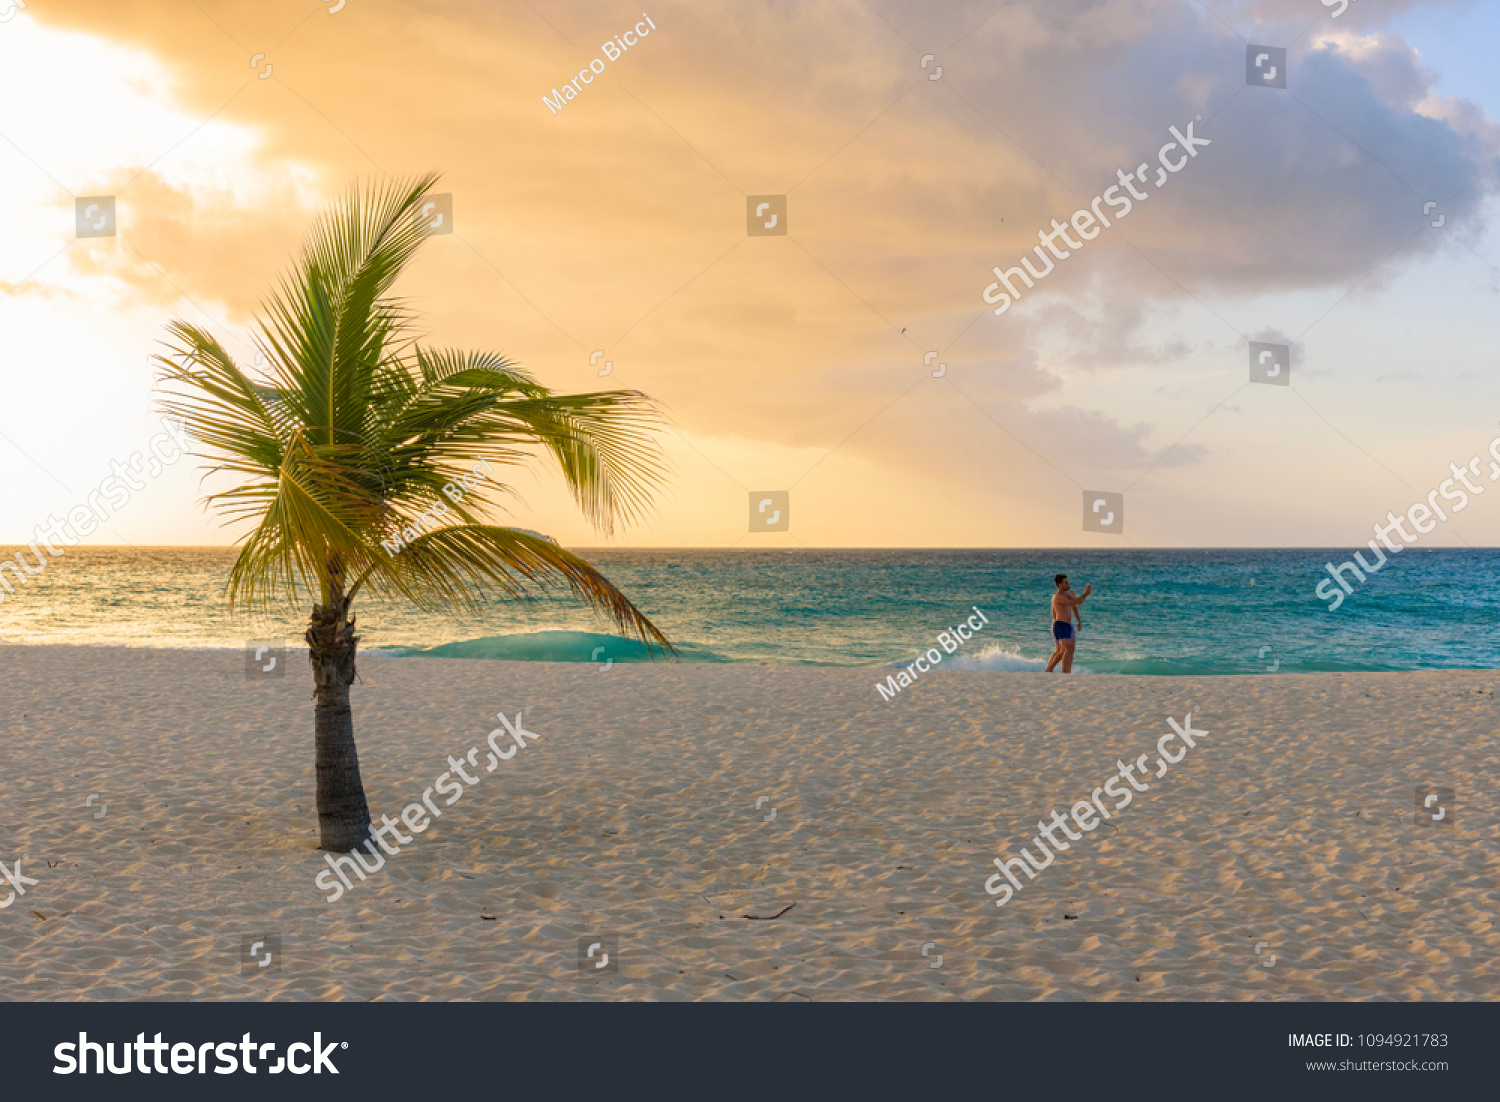 Oranjestad, Aruba - January 9, 2018: A gay couple stroll romantically on the